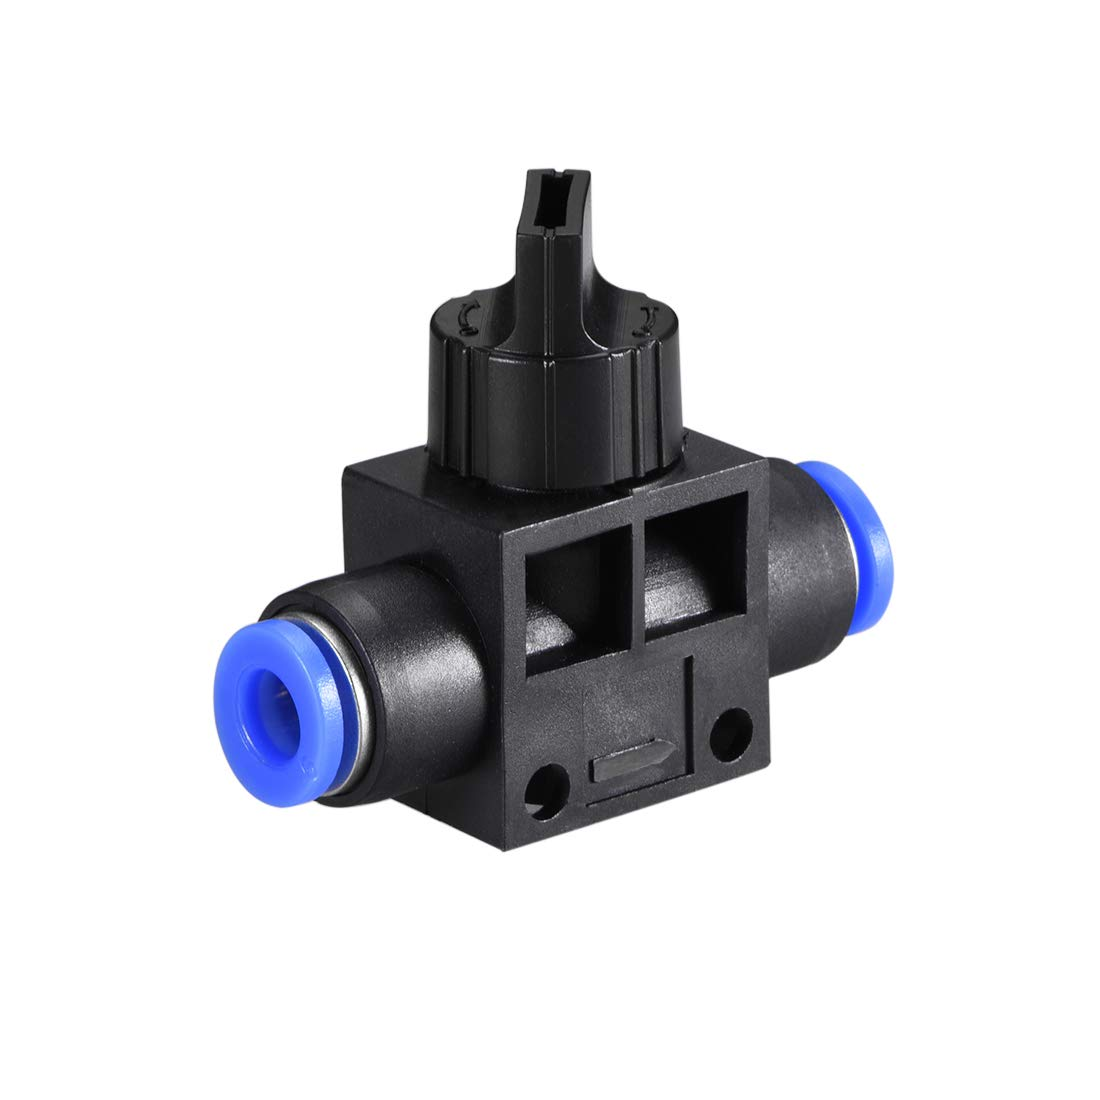 uxcell 6mm OD Pneumatic Air Flow Control Valve with Push-to-Connect Fitting,Union Straight,Pneumatic Air Controller Valve 2pcs